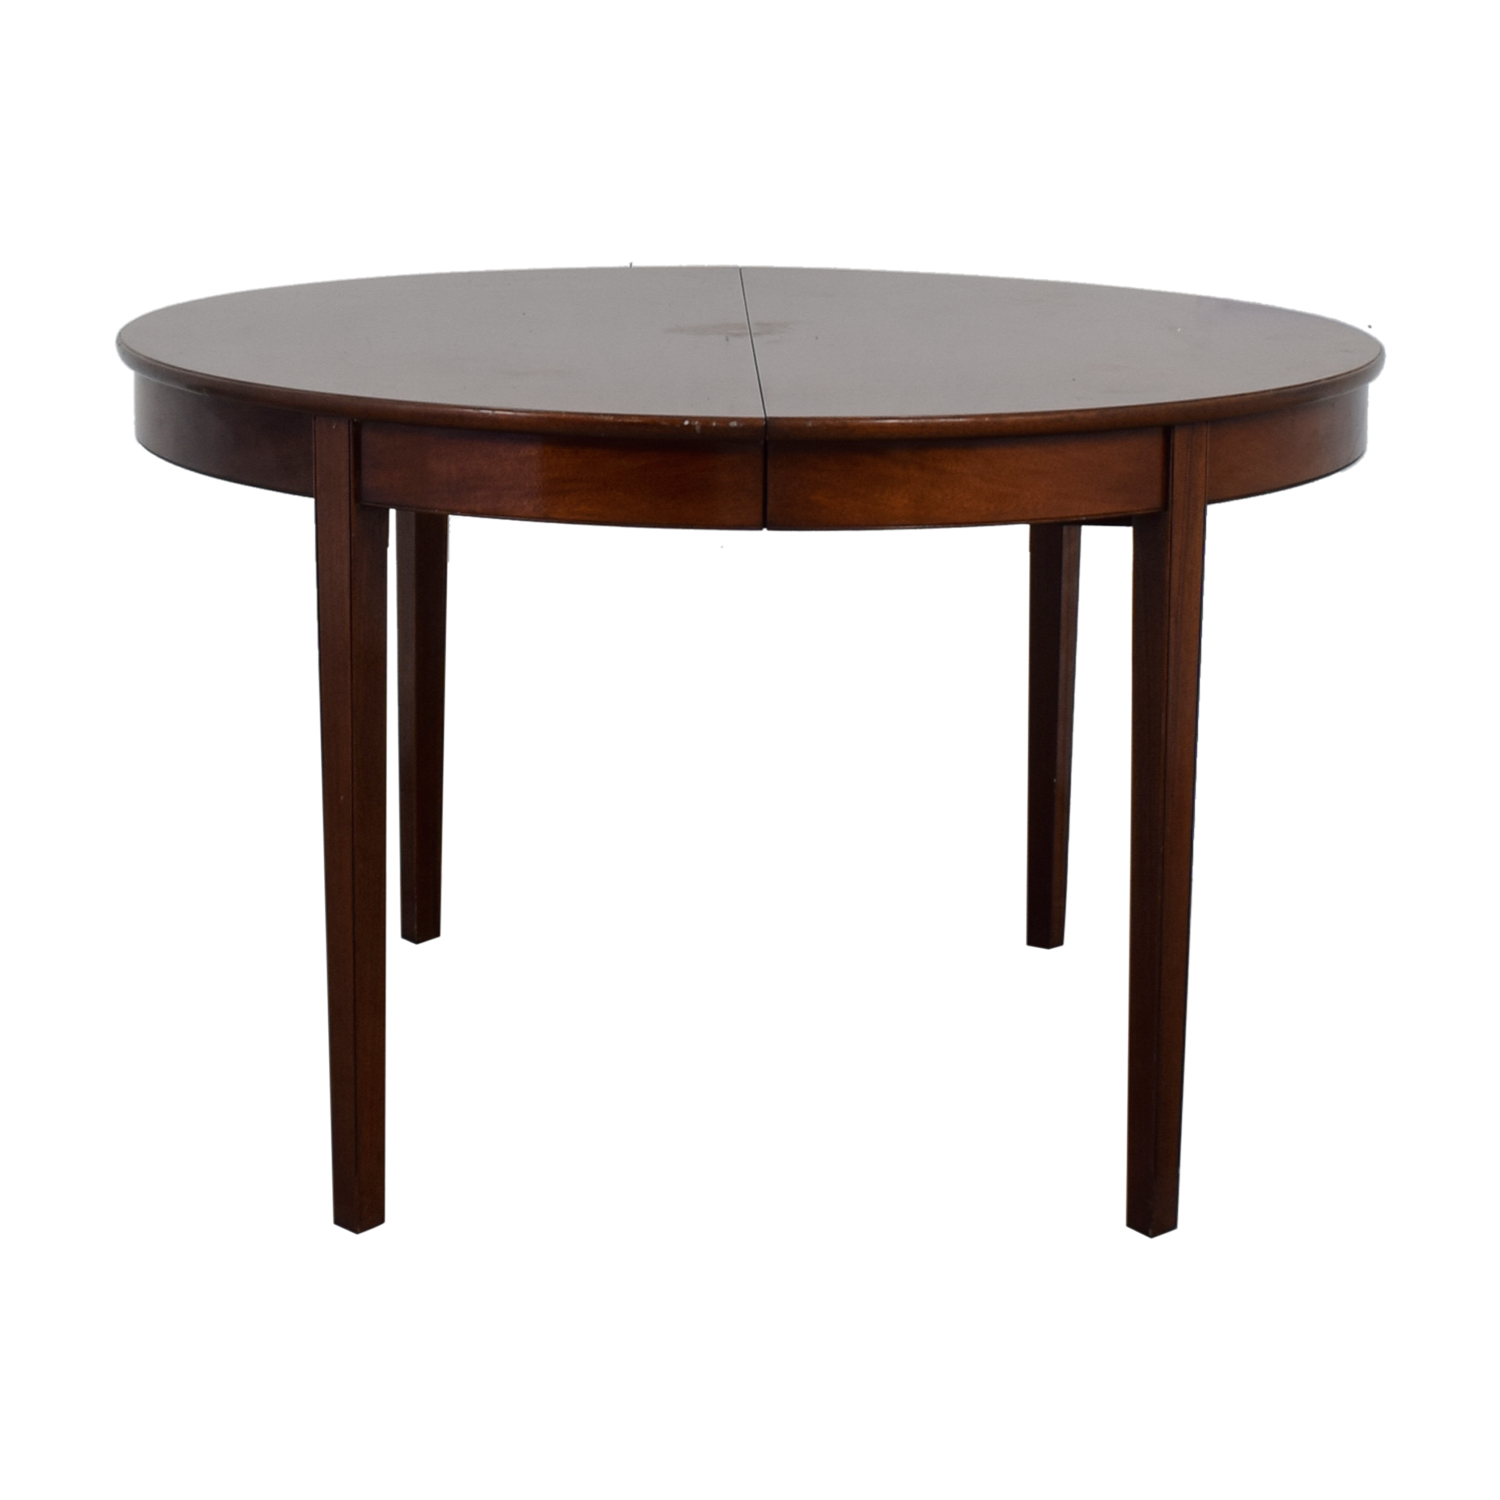 Jacob Kjaer Wyeth Round Extendable Dining Table / Dinner Tables